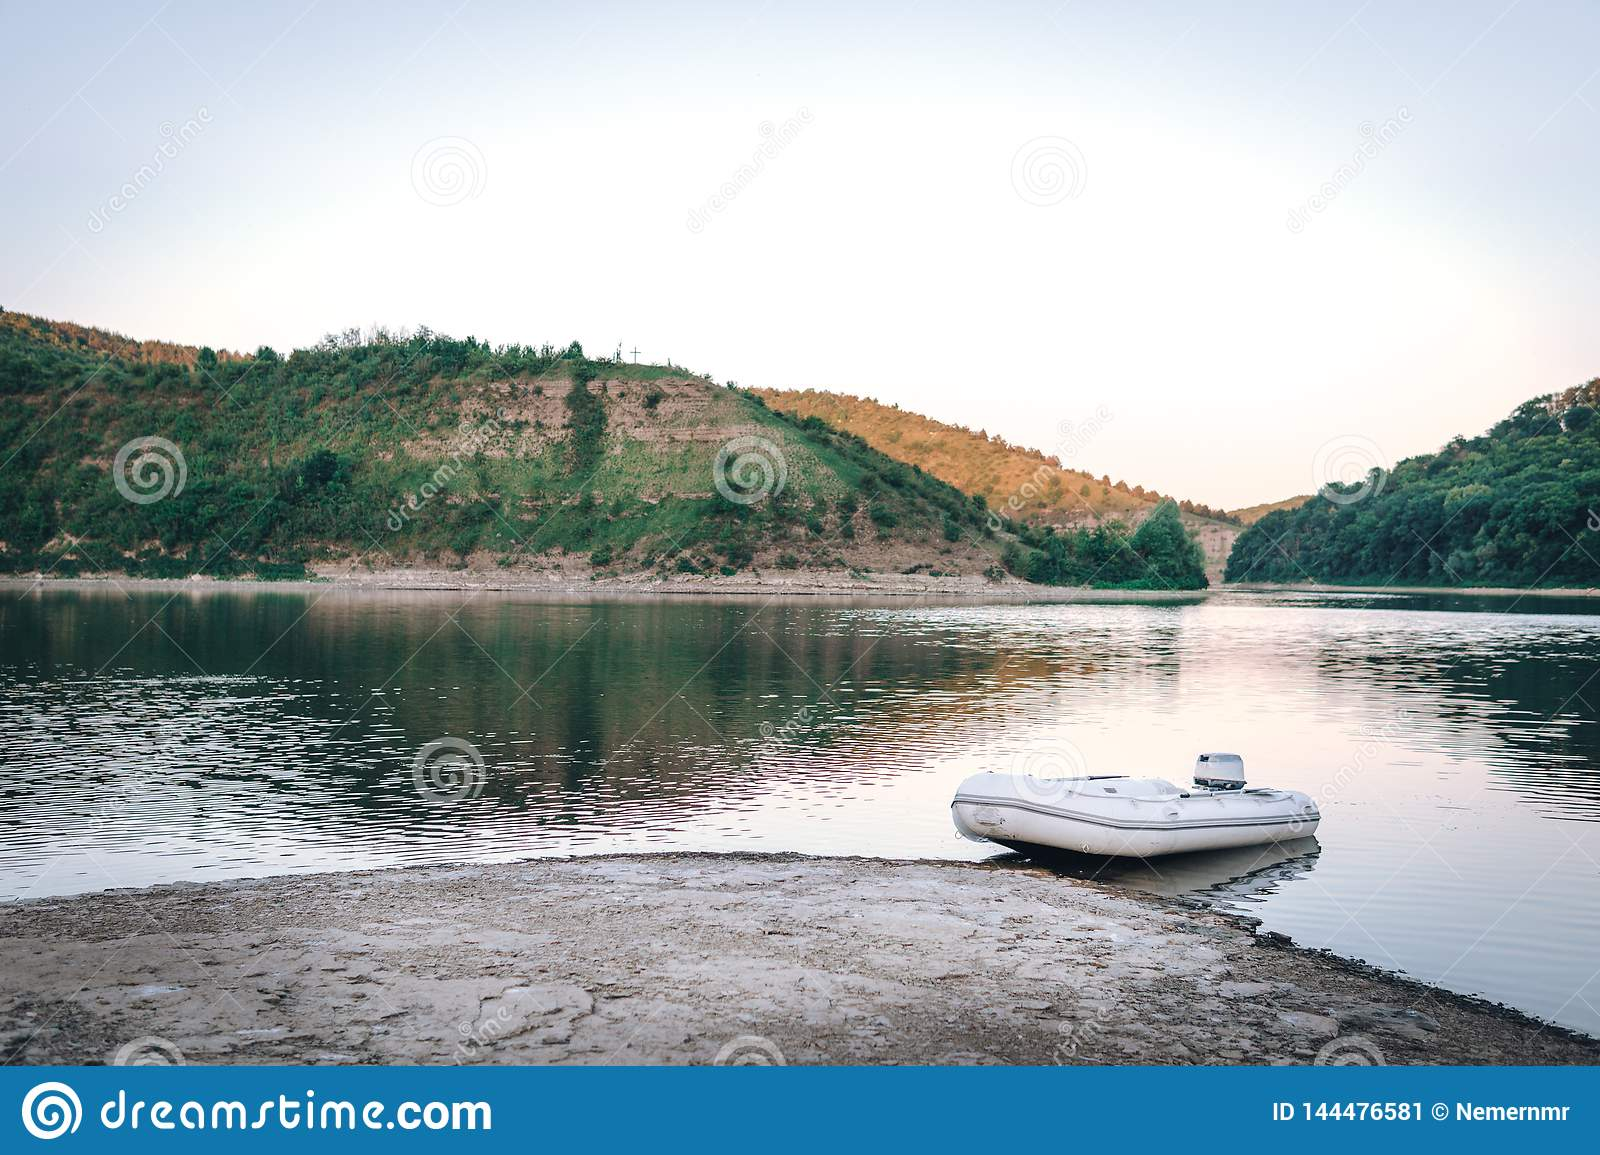 The small white motor boat on the mountain river, sunset, fishing concept